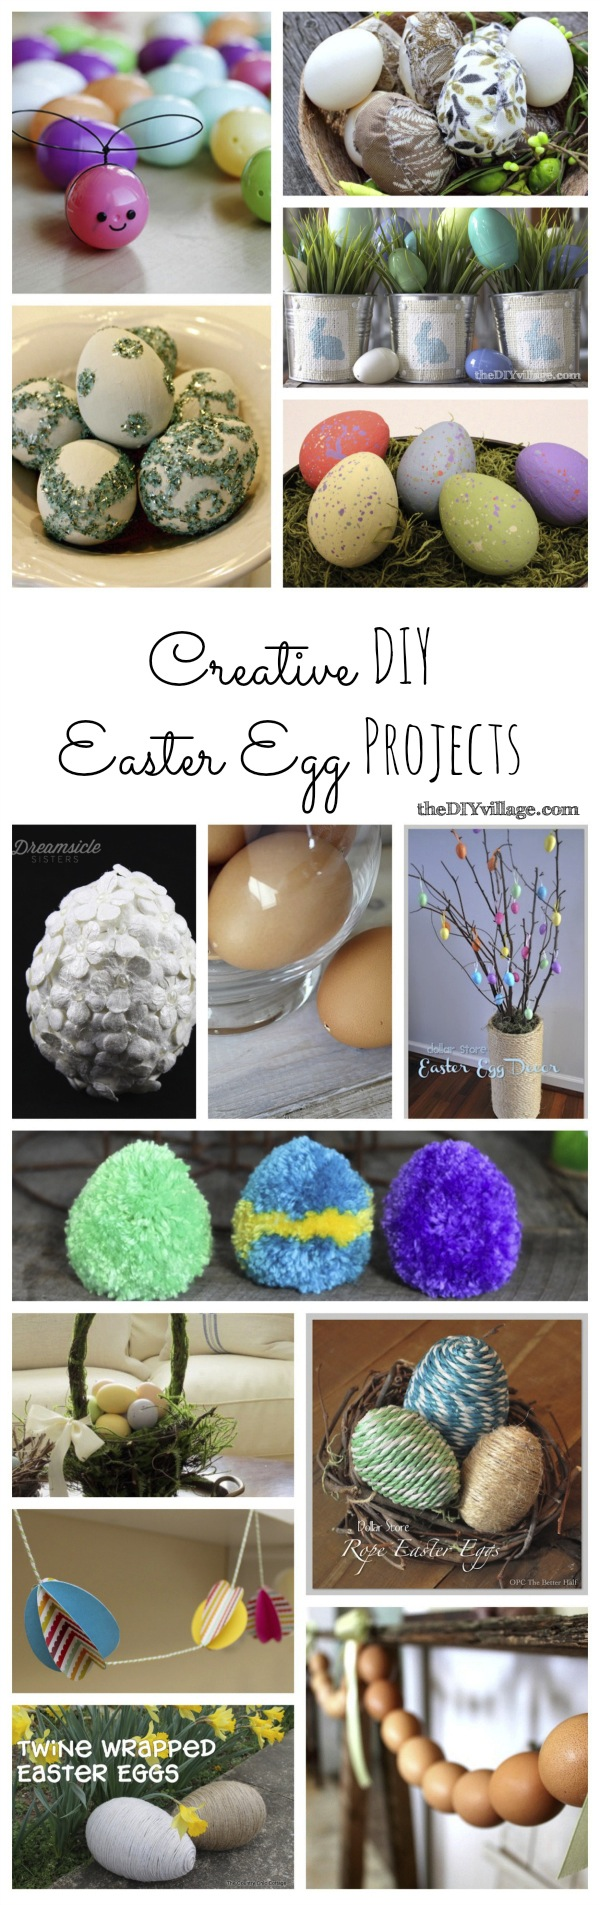 Creative DIY Easter Egg Projects at: theDIYvillage.com